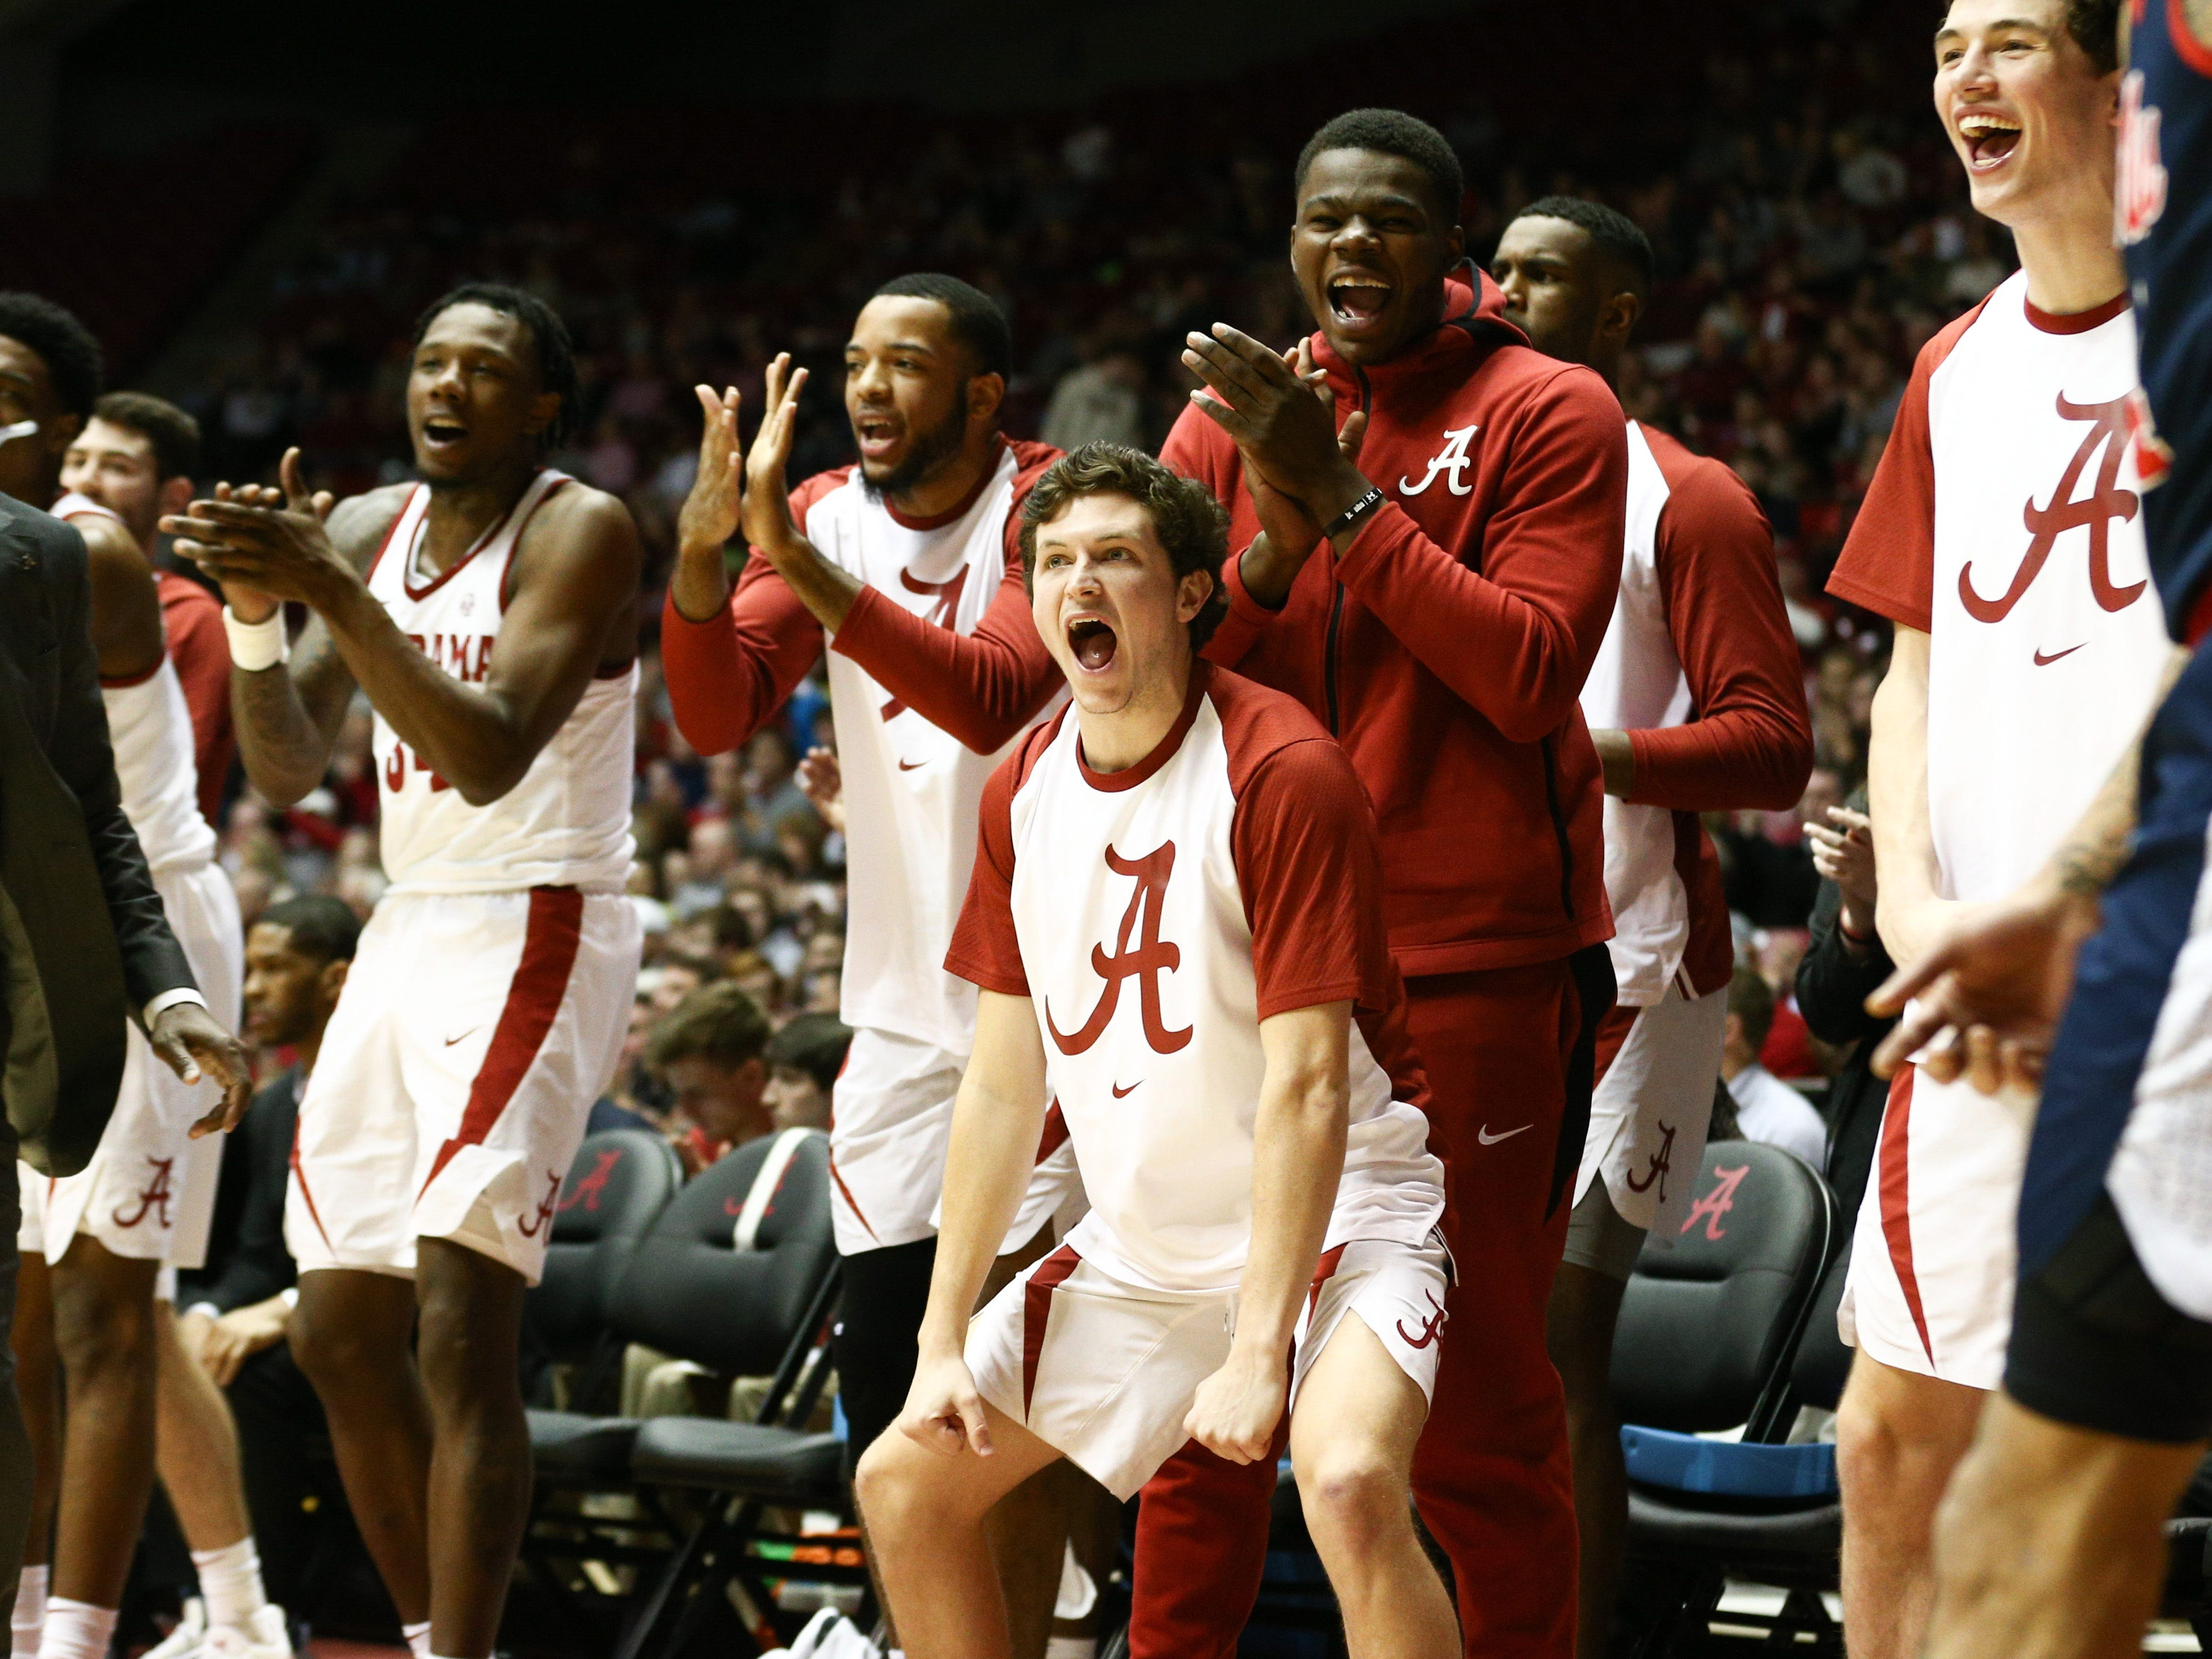 Jan 22, 2019; Tuscaloosa, AL, USA; Alabama Crimson Tide guard Lawson Schaffer (24) reacts after a teammates play against Mississippi Rebels during first half at Coleman Coliseum. Mandatory Credit: Marvin Gentry-USA TODAY Sports